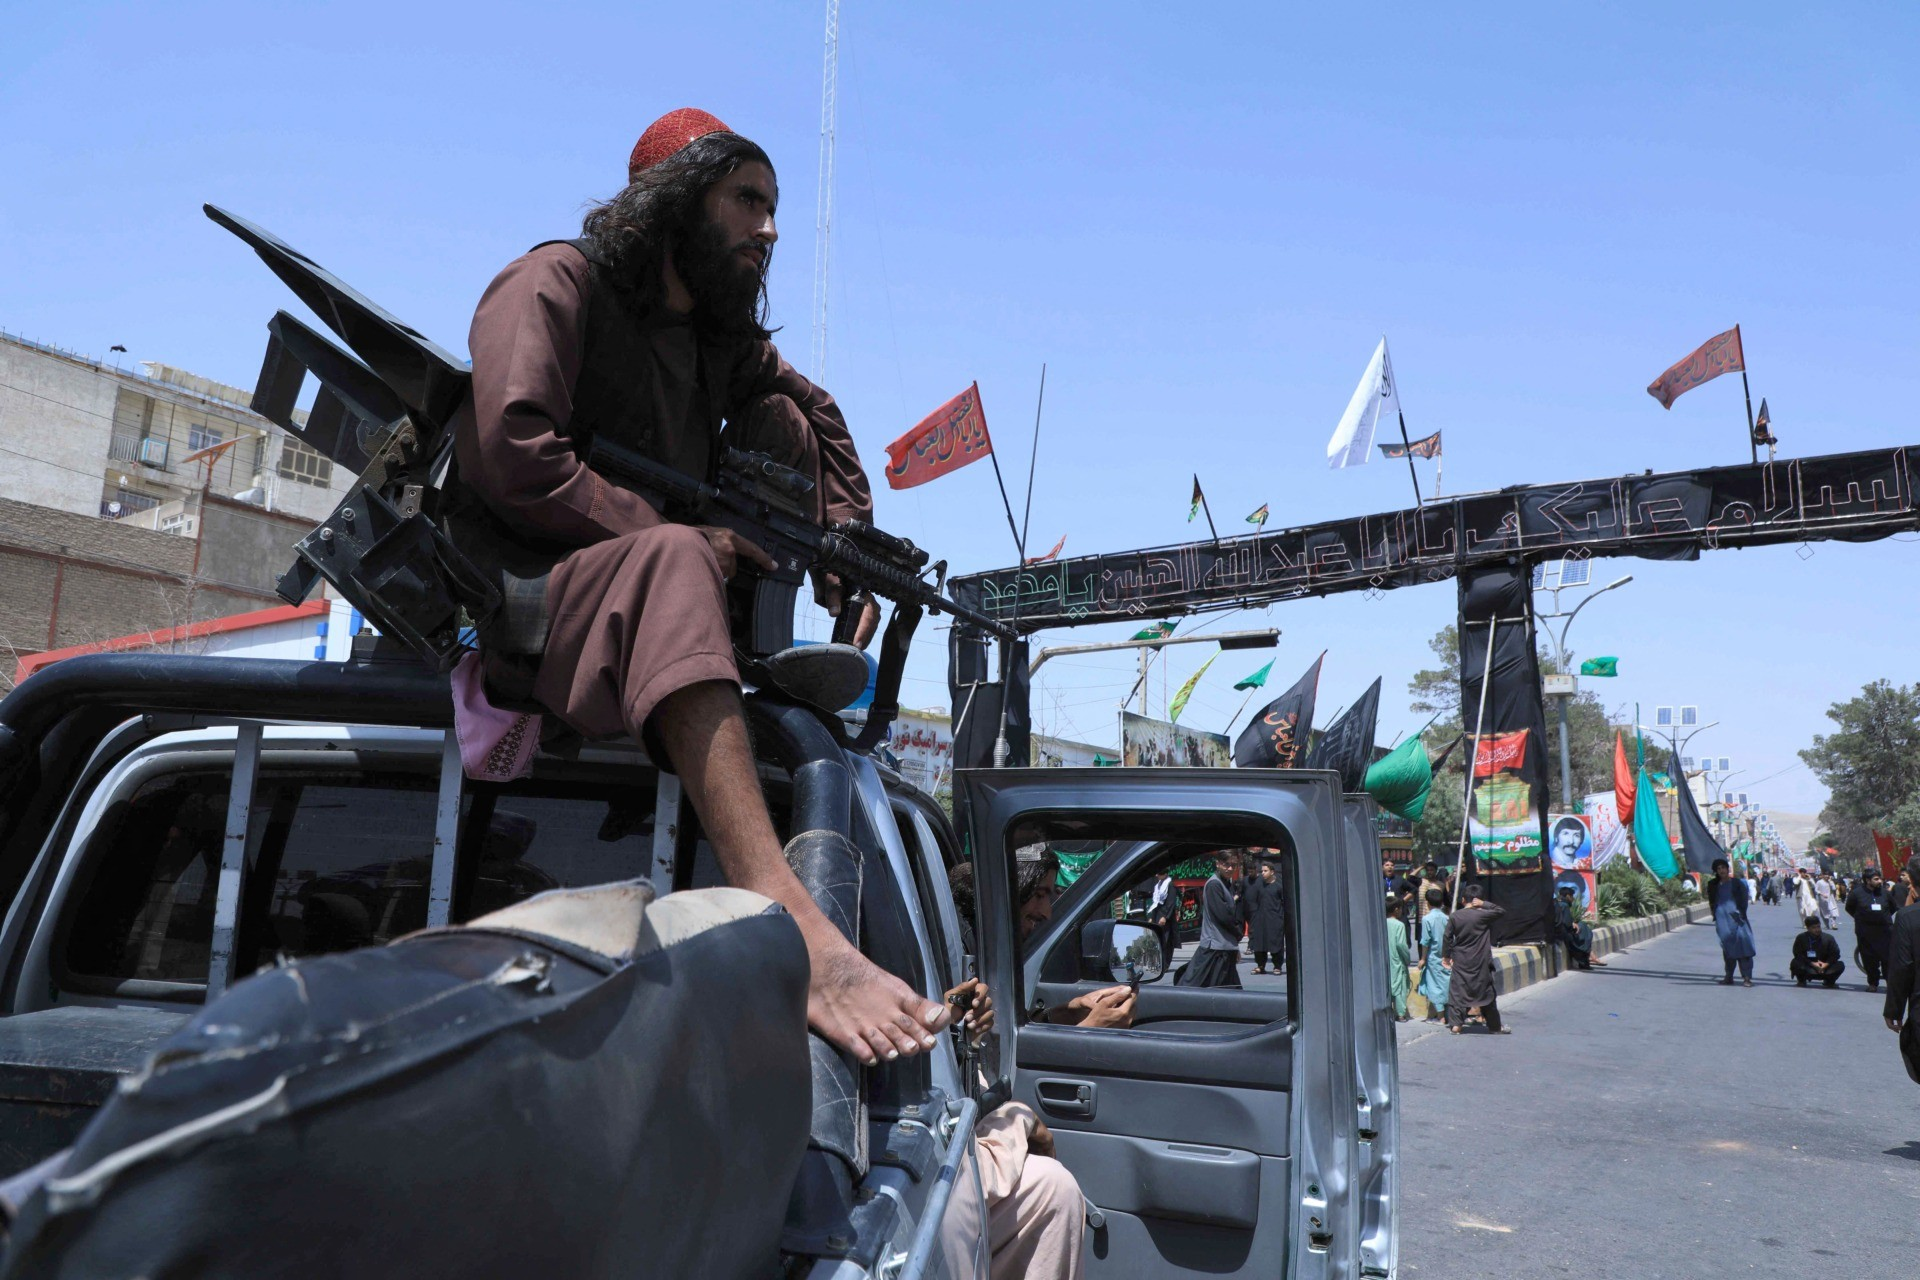 A Taliban fighter stands guard atop a vehicle near the site of an Ashura procession which is held to mark the death of Imam Hussein, the grandson of Prophet Mohammad, along a road in Herat on August 19, 2021, amid the Taliban's military takeover of Afghanistan. (Photo by AREF KARIMI / AFP) (Photo by AREF KARIMI/AFP via Getty Images)